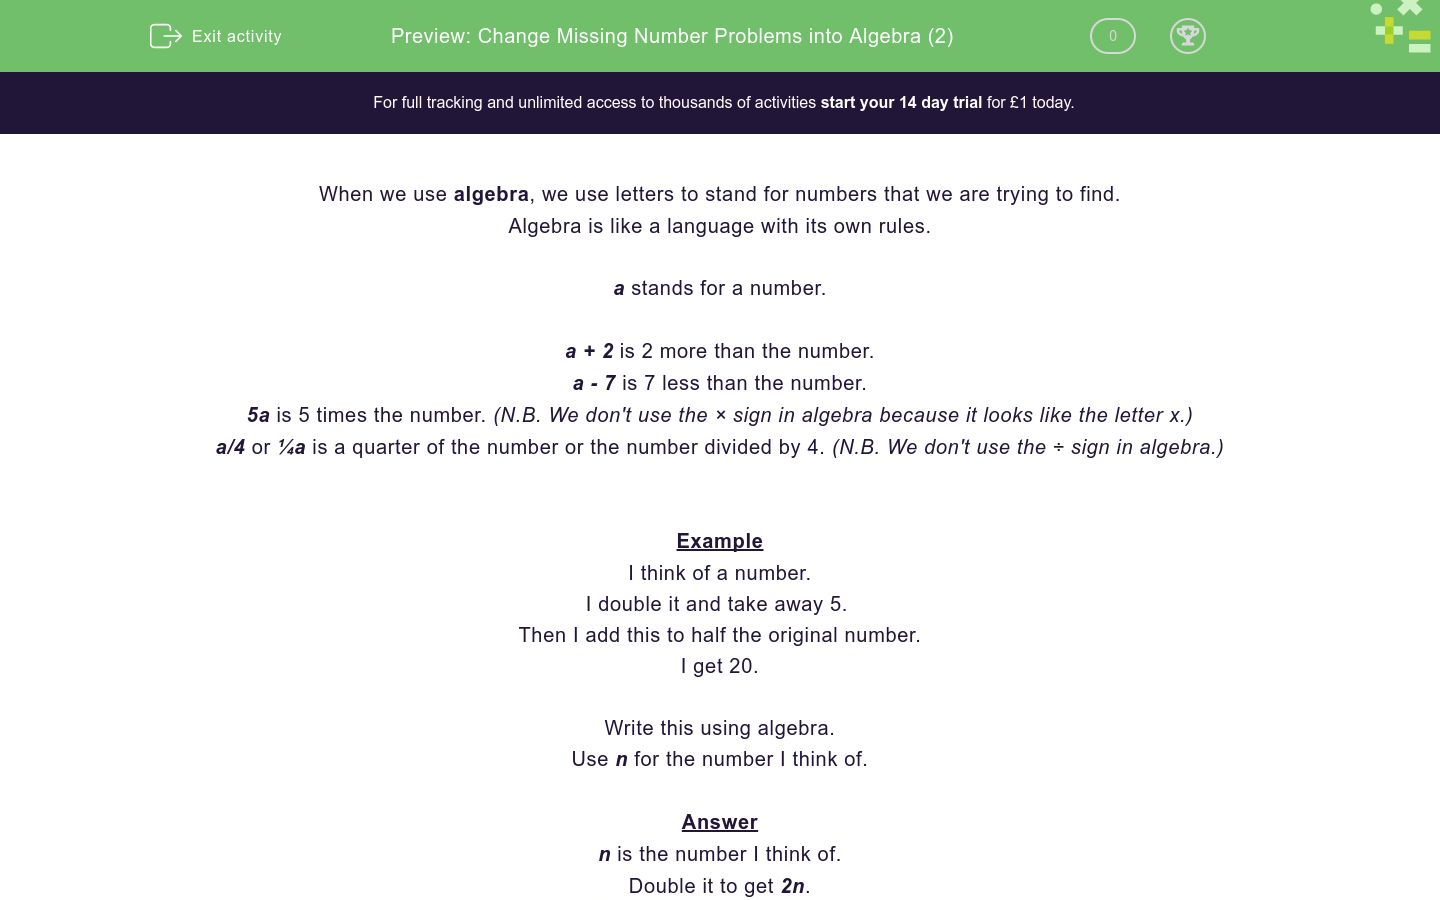 'Change Missing Number Problems into Algebra (2)' worksheet